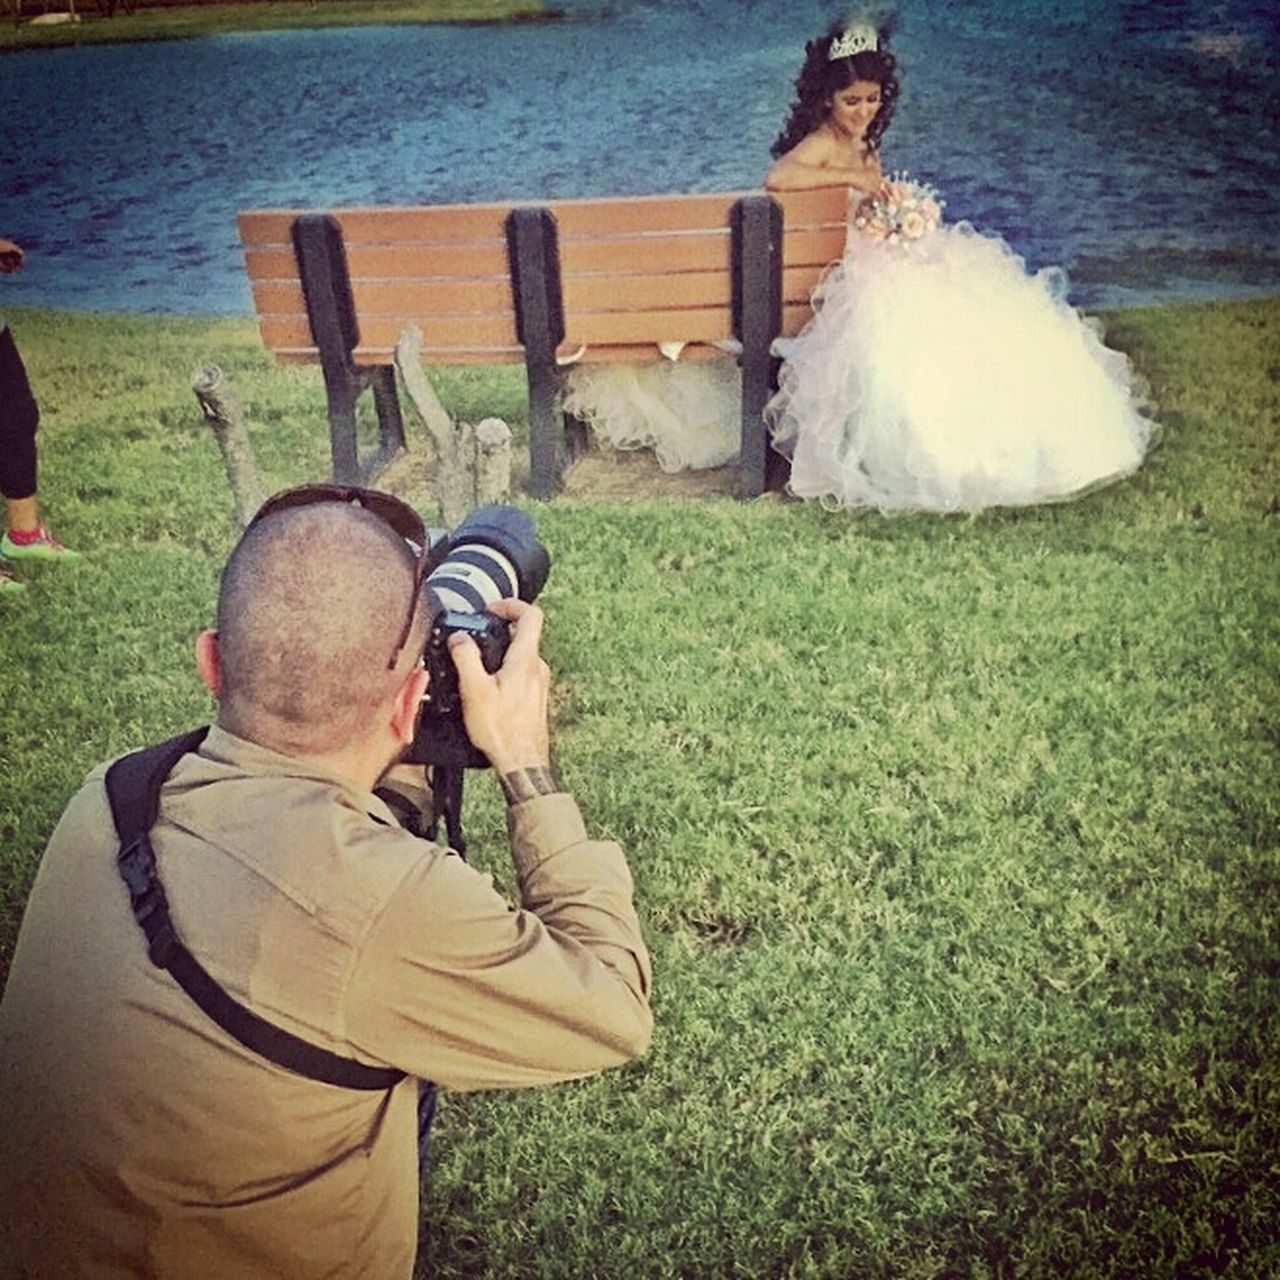 Buquet Becoming A Woman Celebration Birthday Quinceañera Shoes Behind The Lens Behind The Scenes Photographer Happy Birthday! Freelance Life